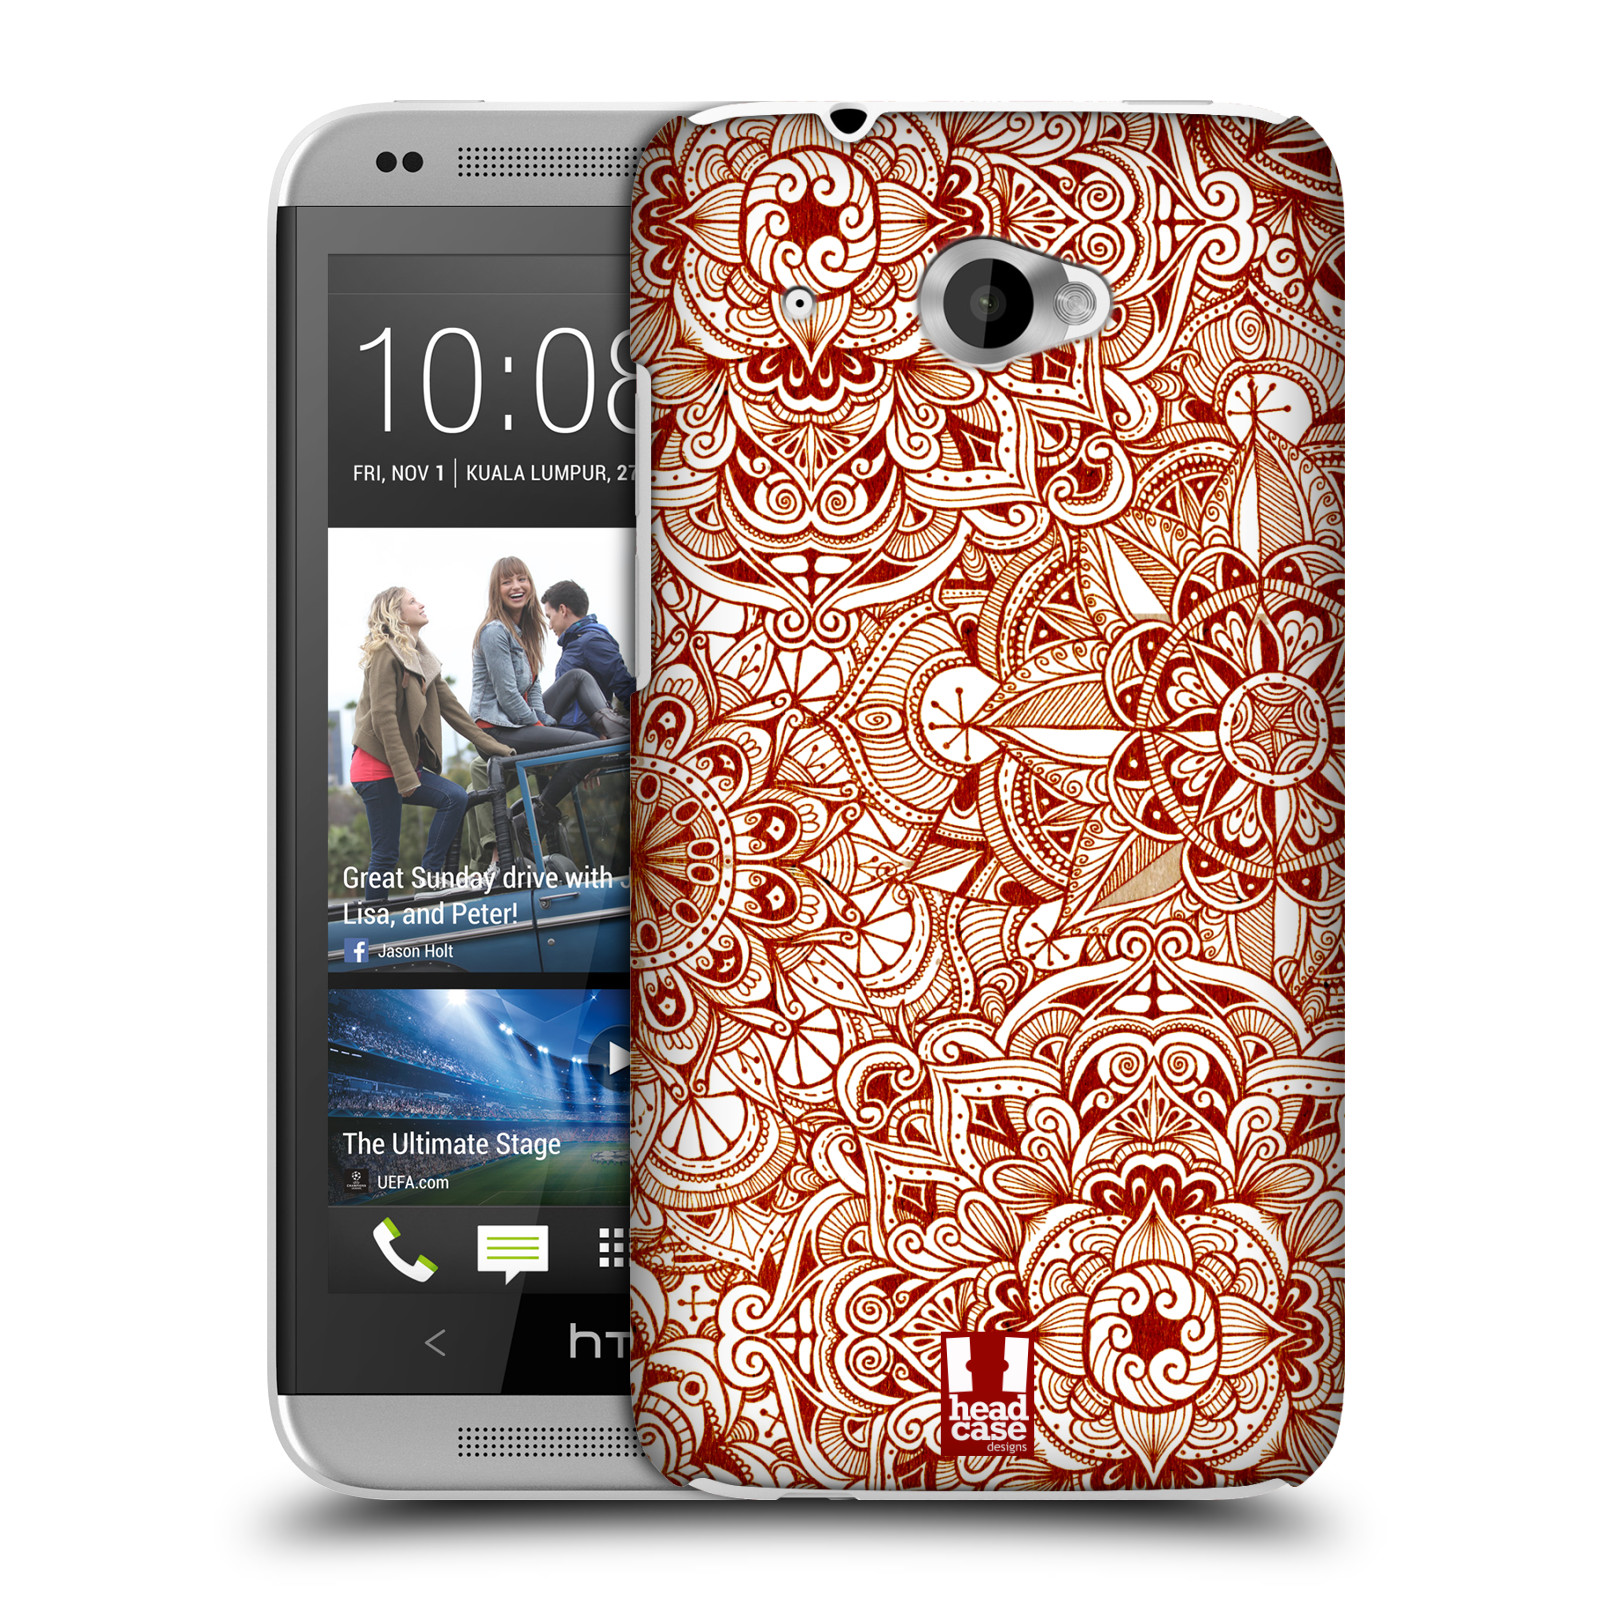 HEAD CASE DESIGNS MANDALA DOODLES CASE COVER FOR HTC DESIRE 601 LTE